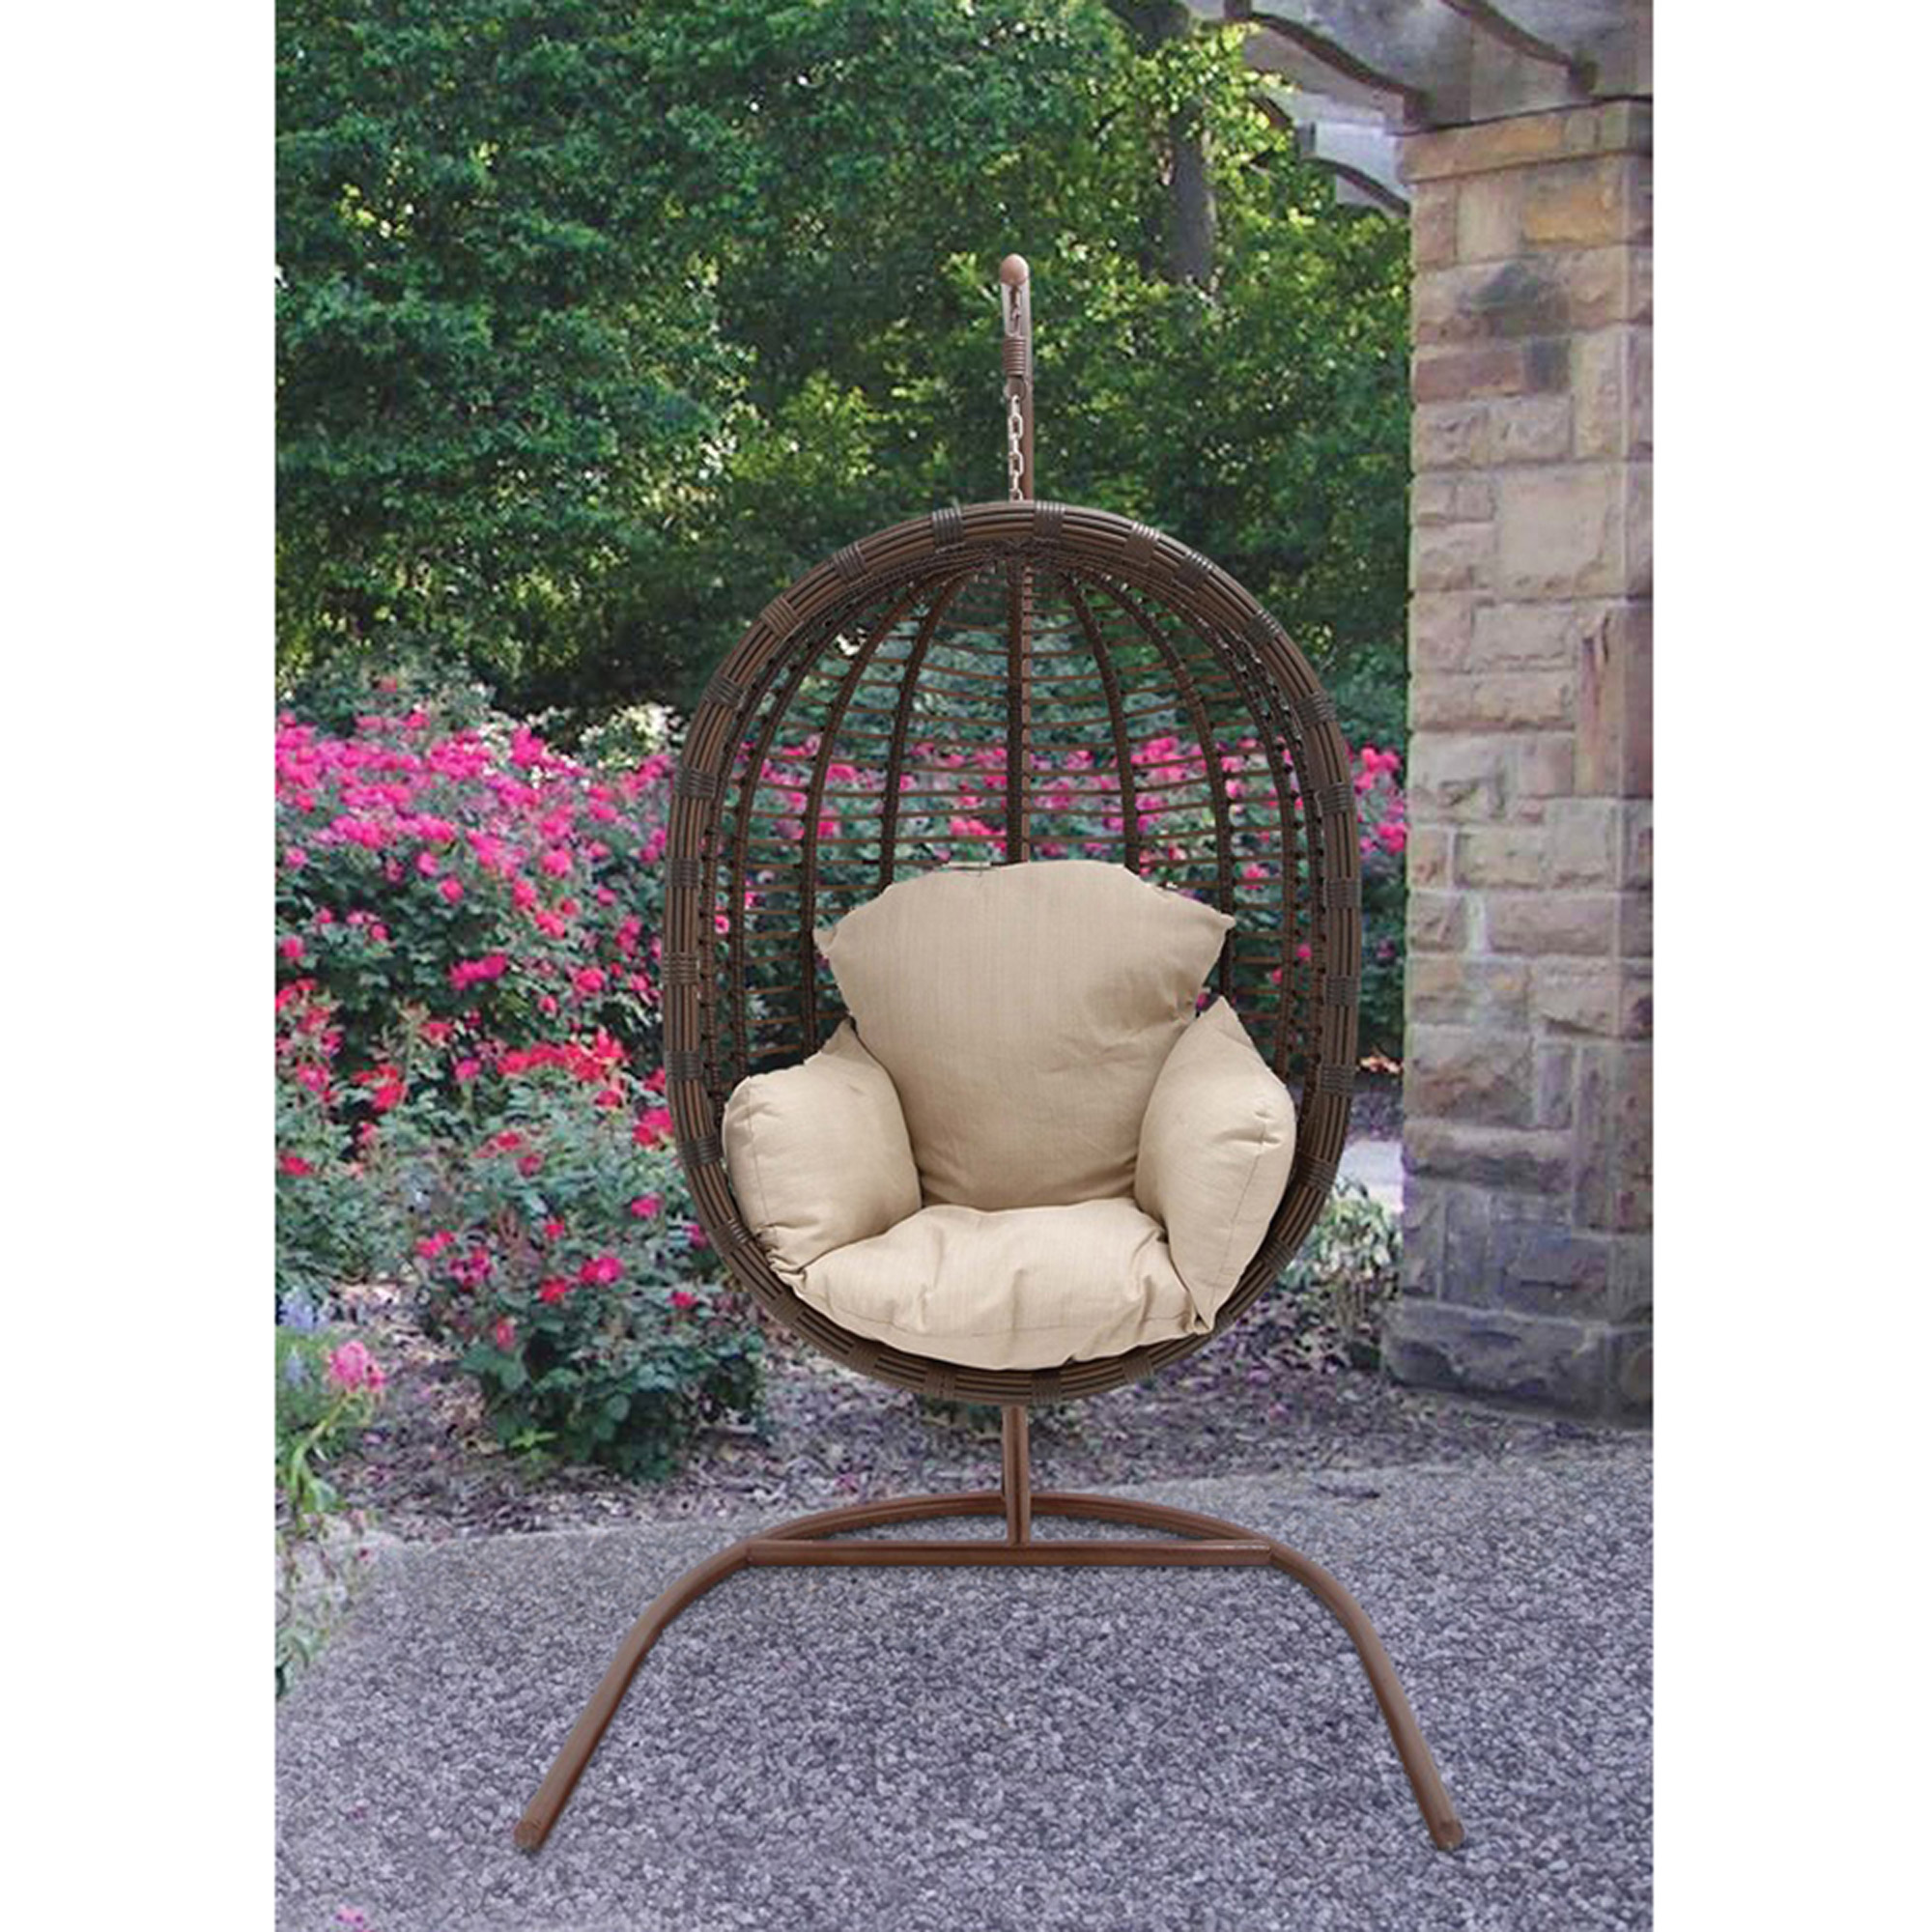 Charmant Hanover Outdoor Furniture Rattan Wicker Pod Swing Chair With Full Cream  Cushion